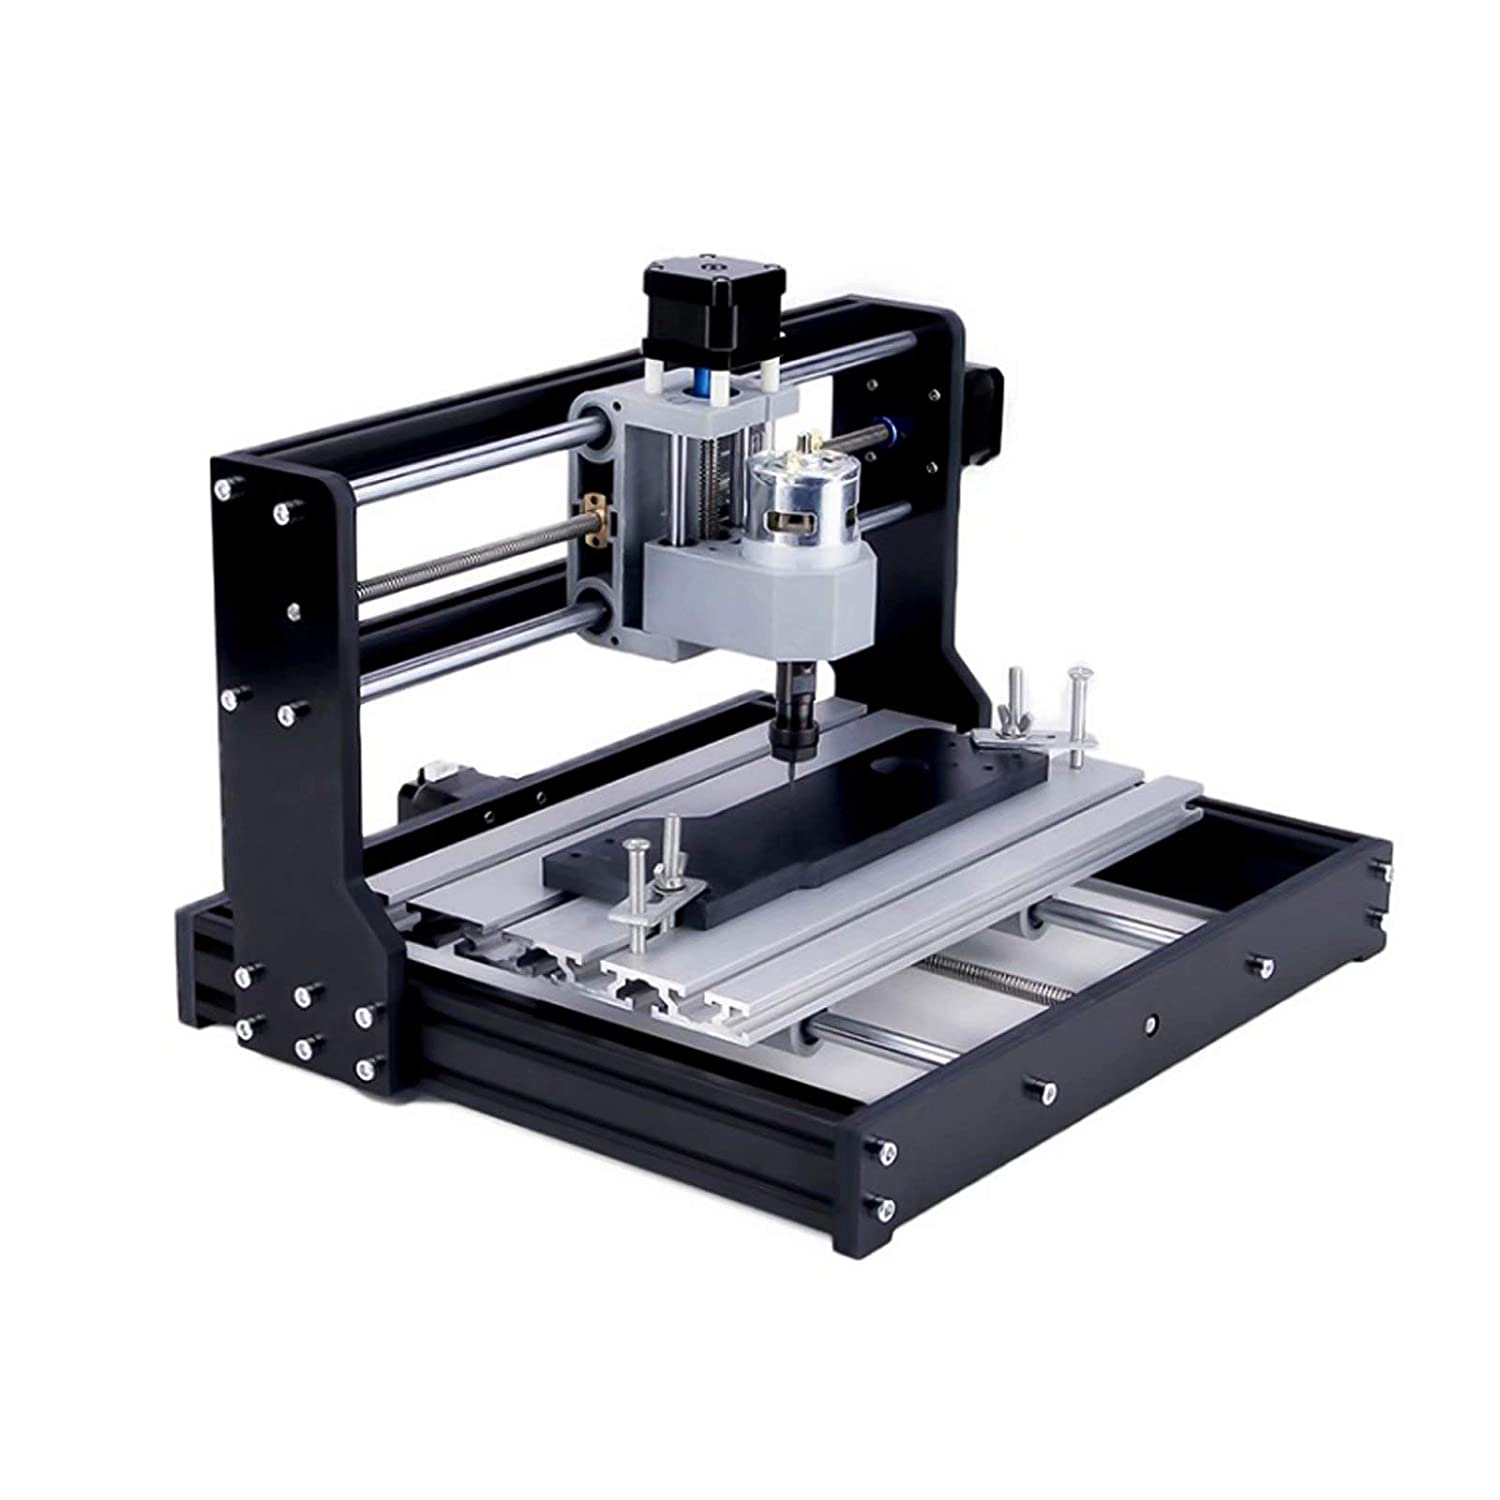 SIERINO Micro 55% OFF 2021 autumn and winter new CNC Engraving Machine Router - Kit Multifunctional